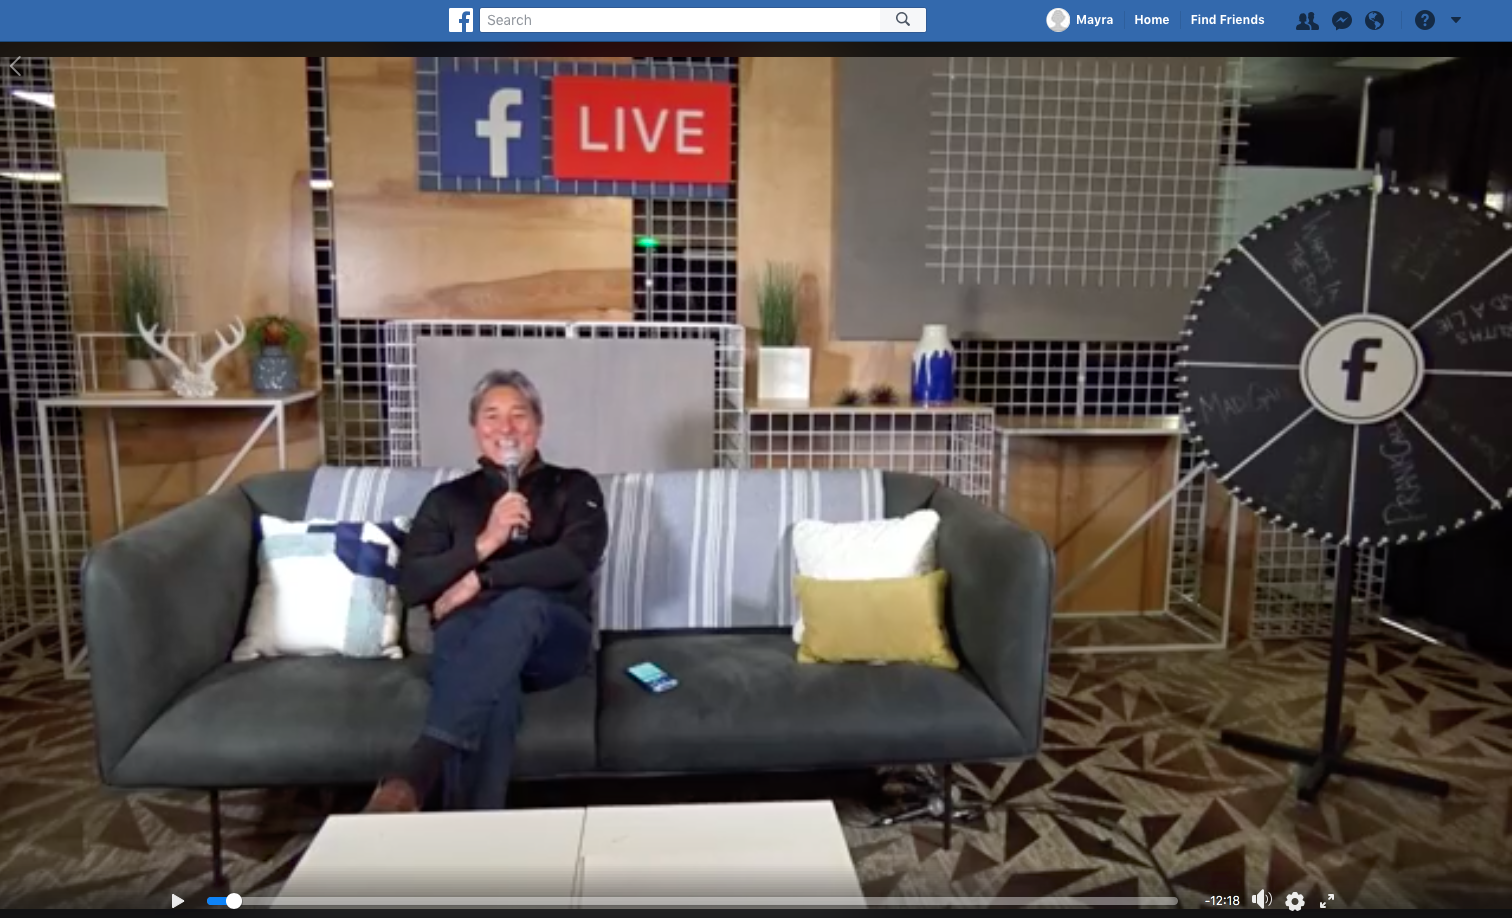 Guy Kawasaki - Live Ask Me Anything Session